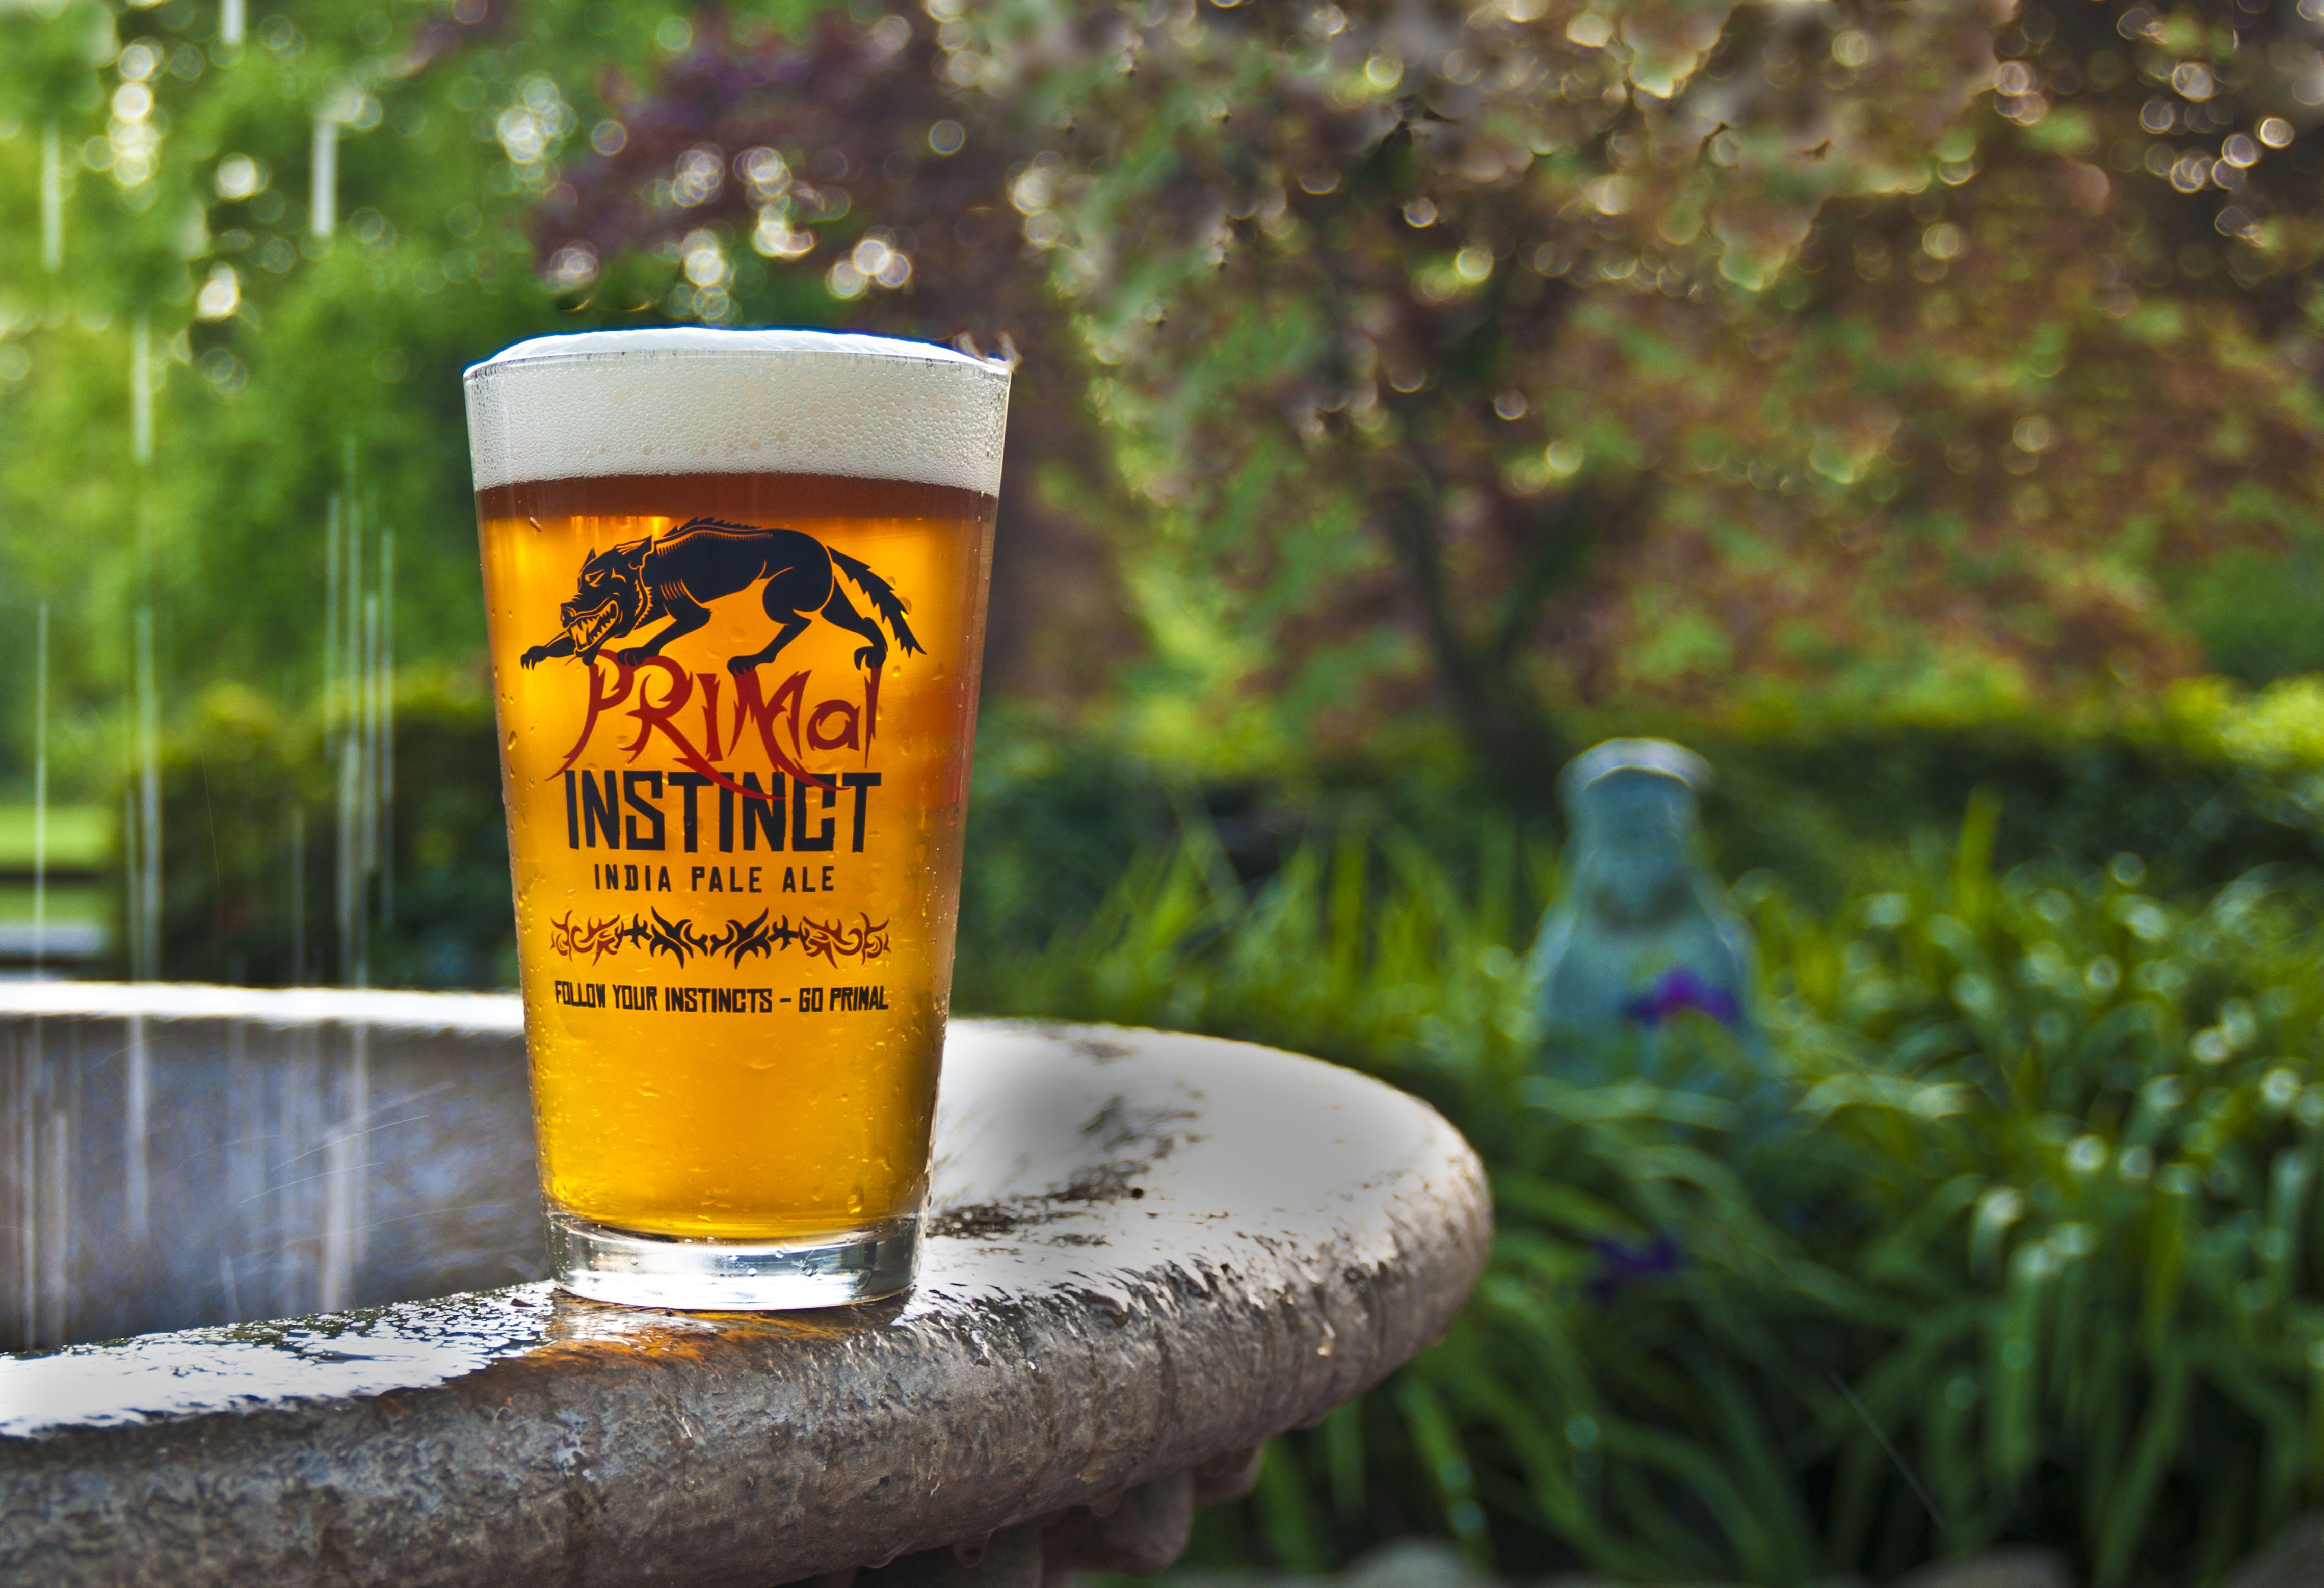 13+ Stable craft brewing events ideas in 2021